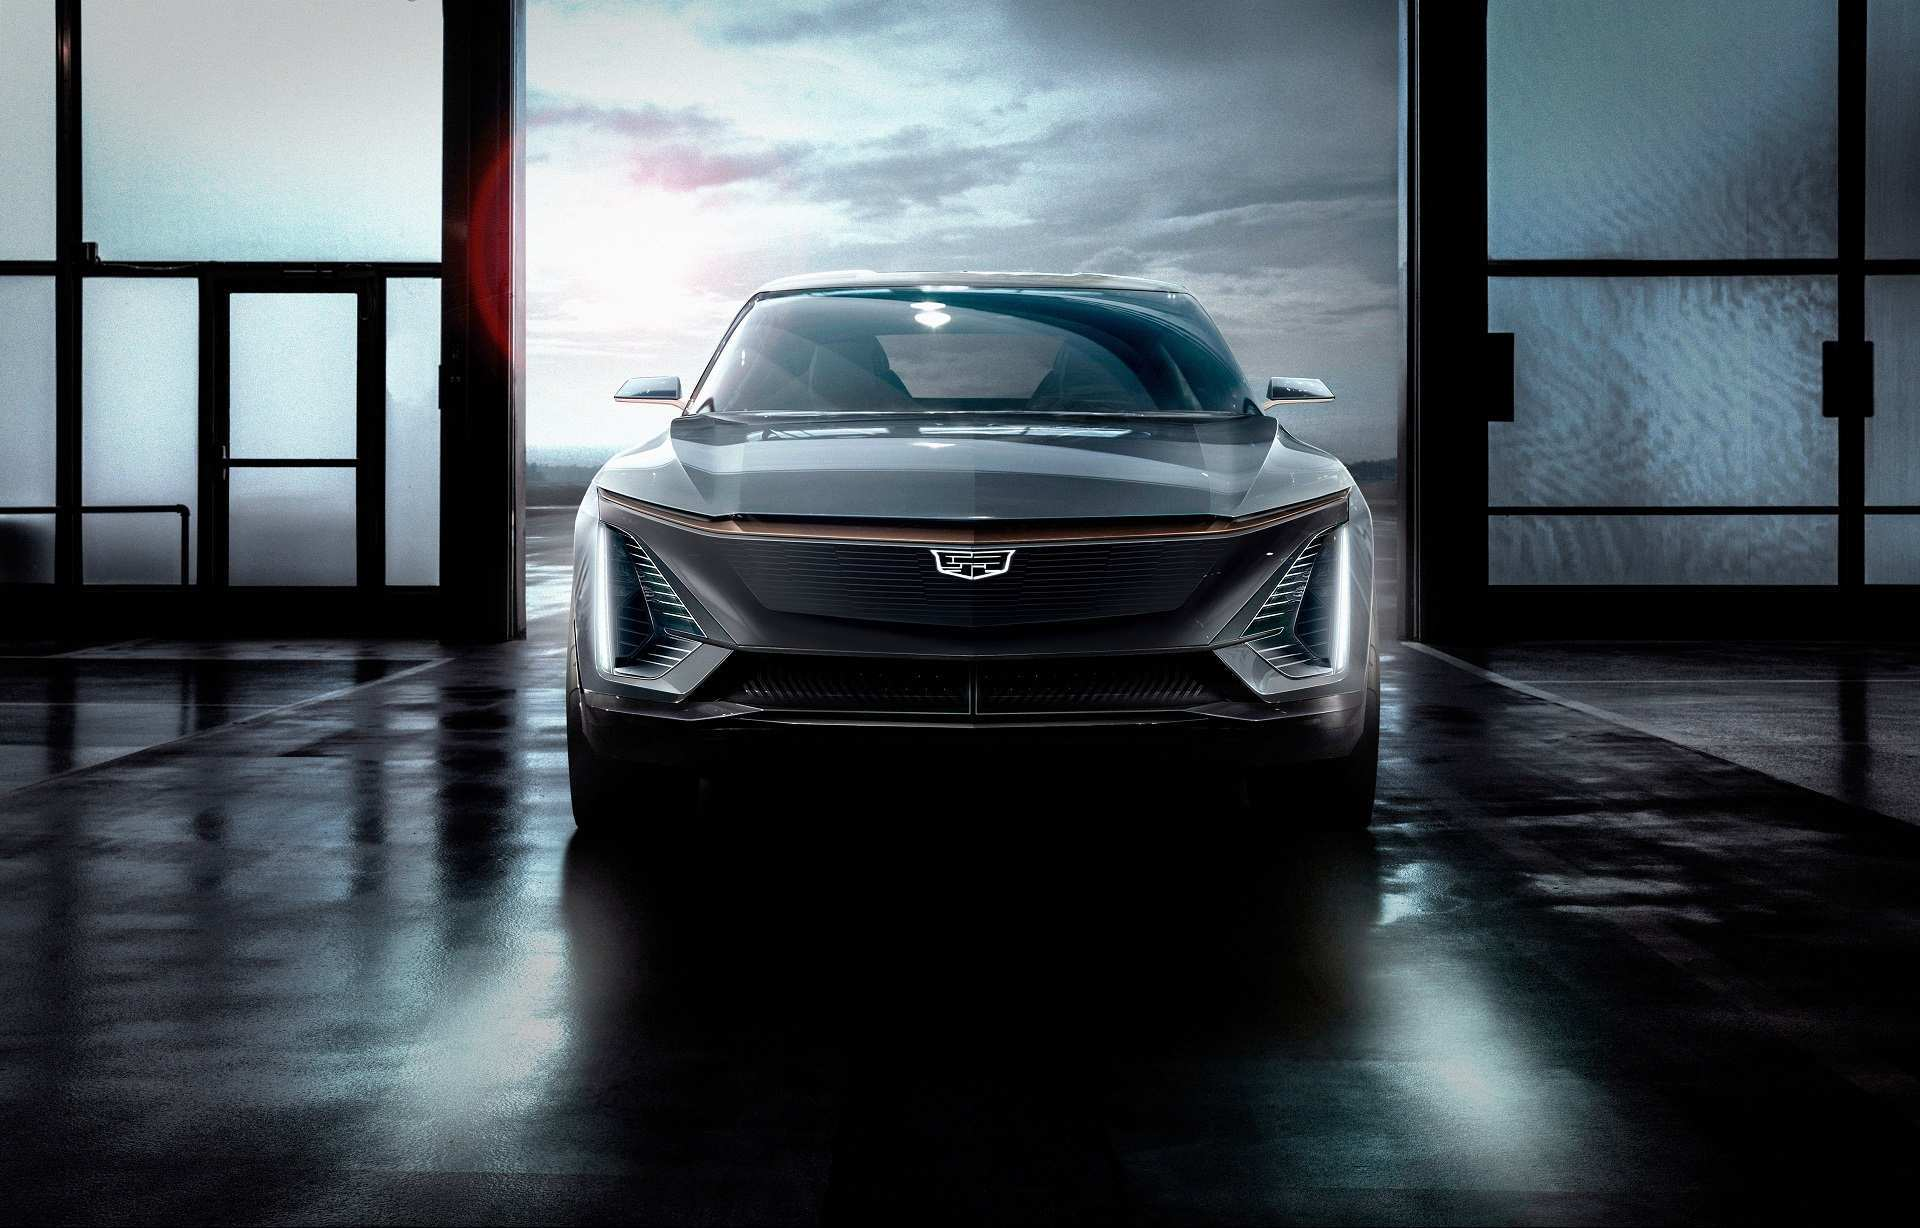 98 All New 2019 Cadillac Self Driving Configurations